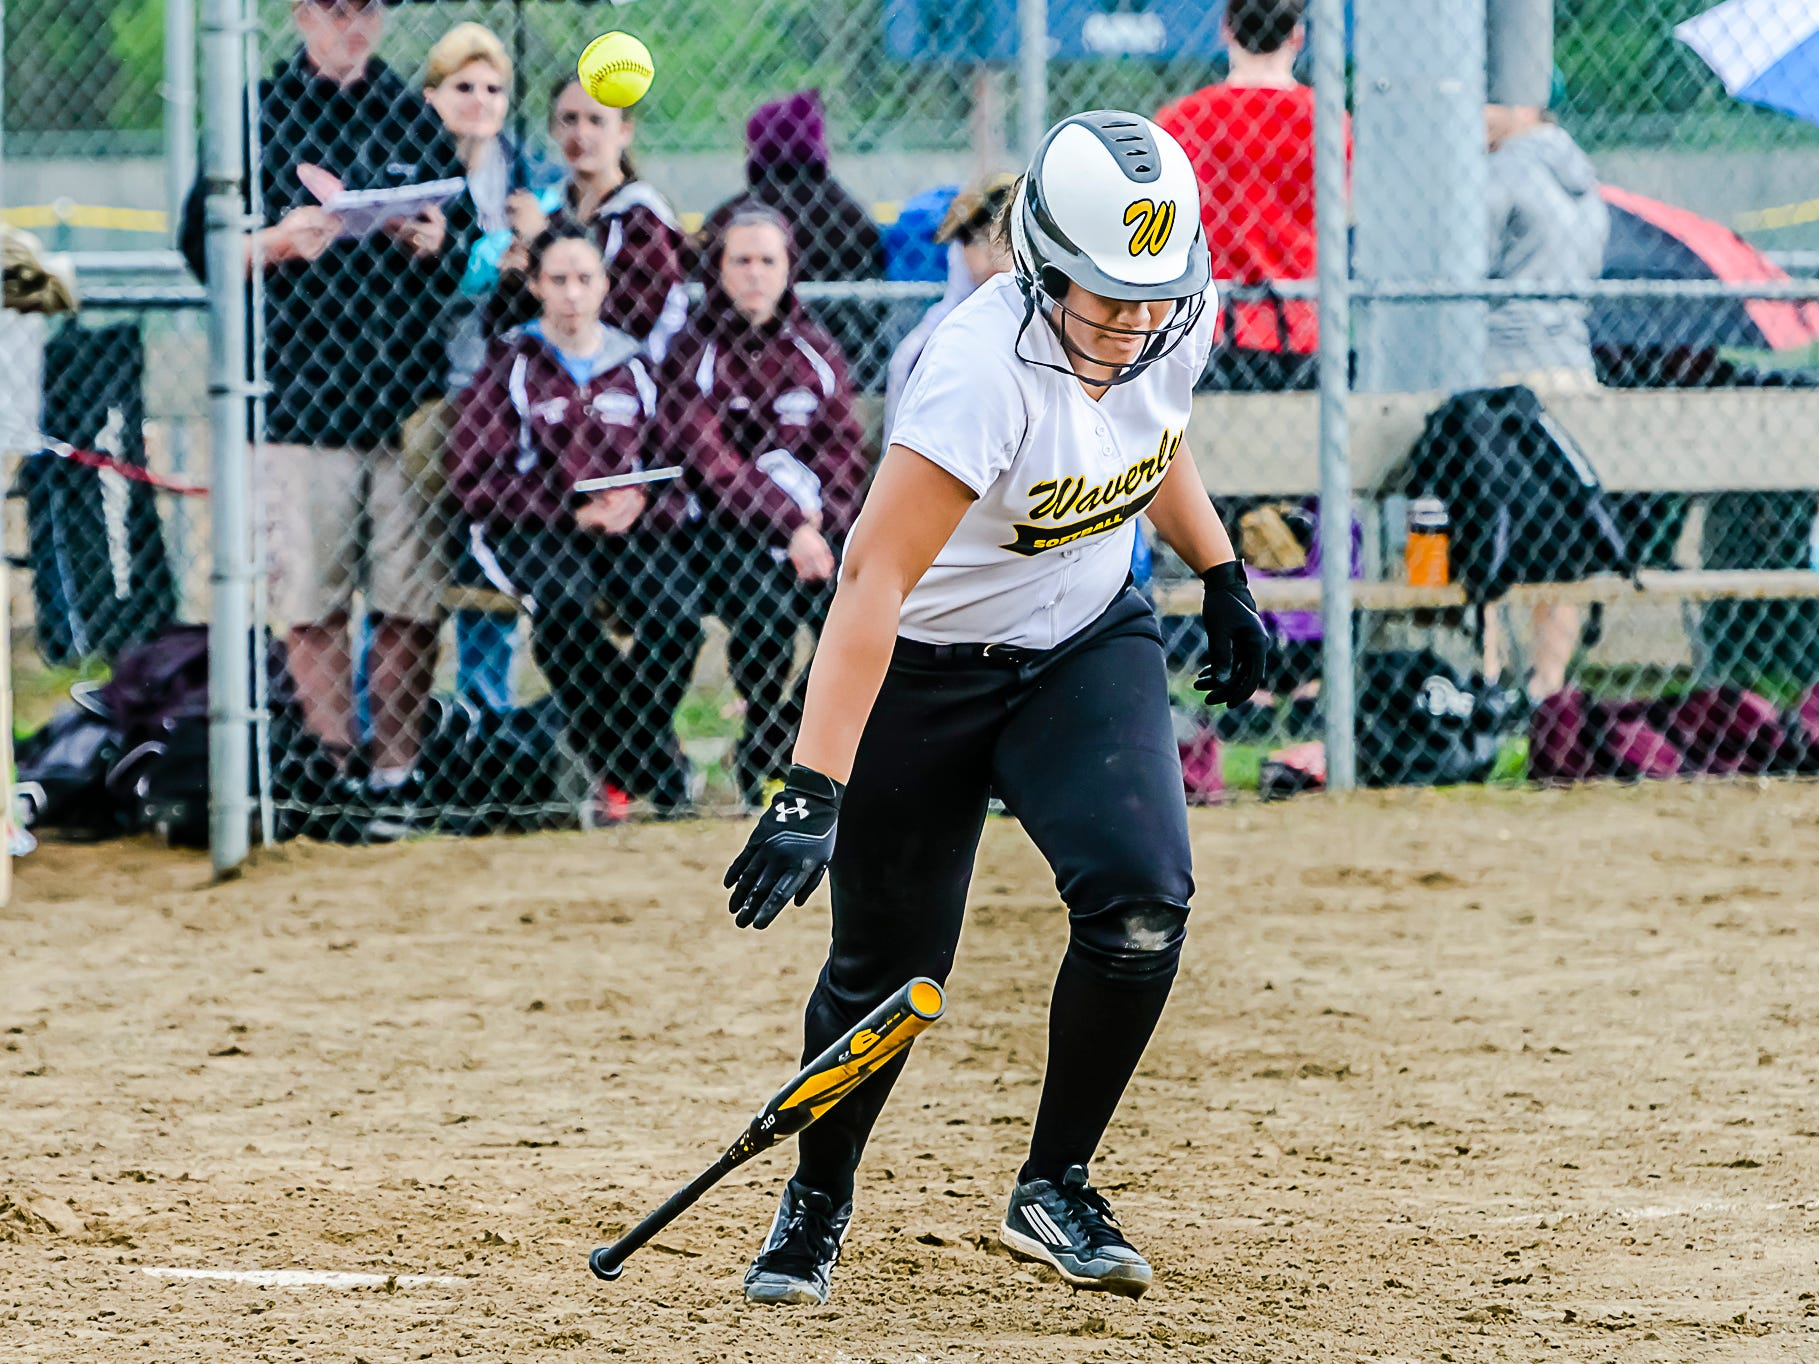 Waverly's Mikailah Jackson ranks among the area leaders in home runs and also strikeouts.